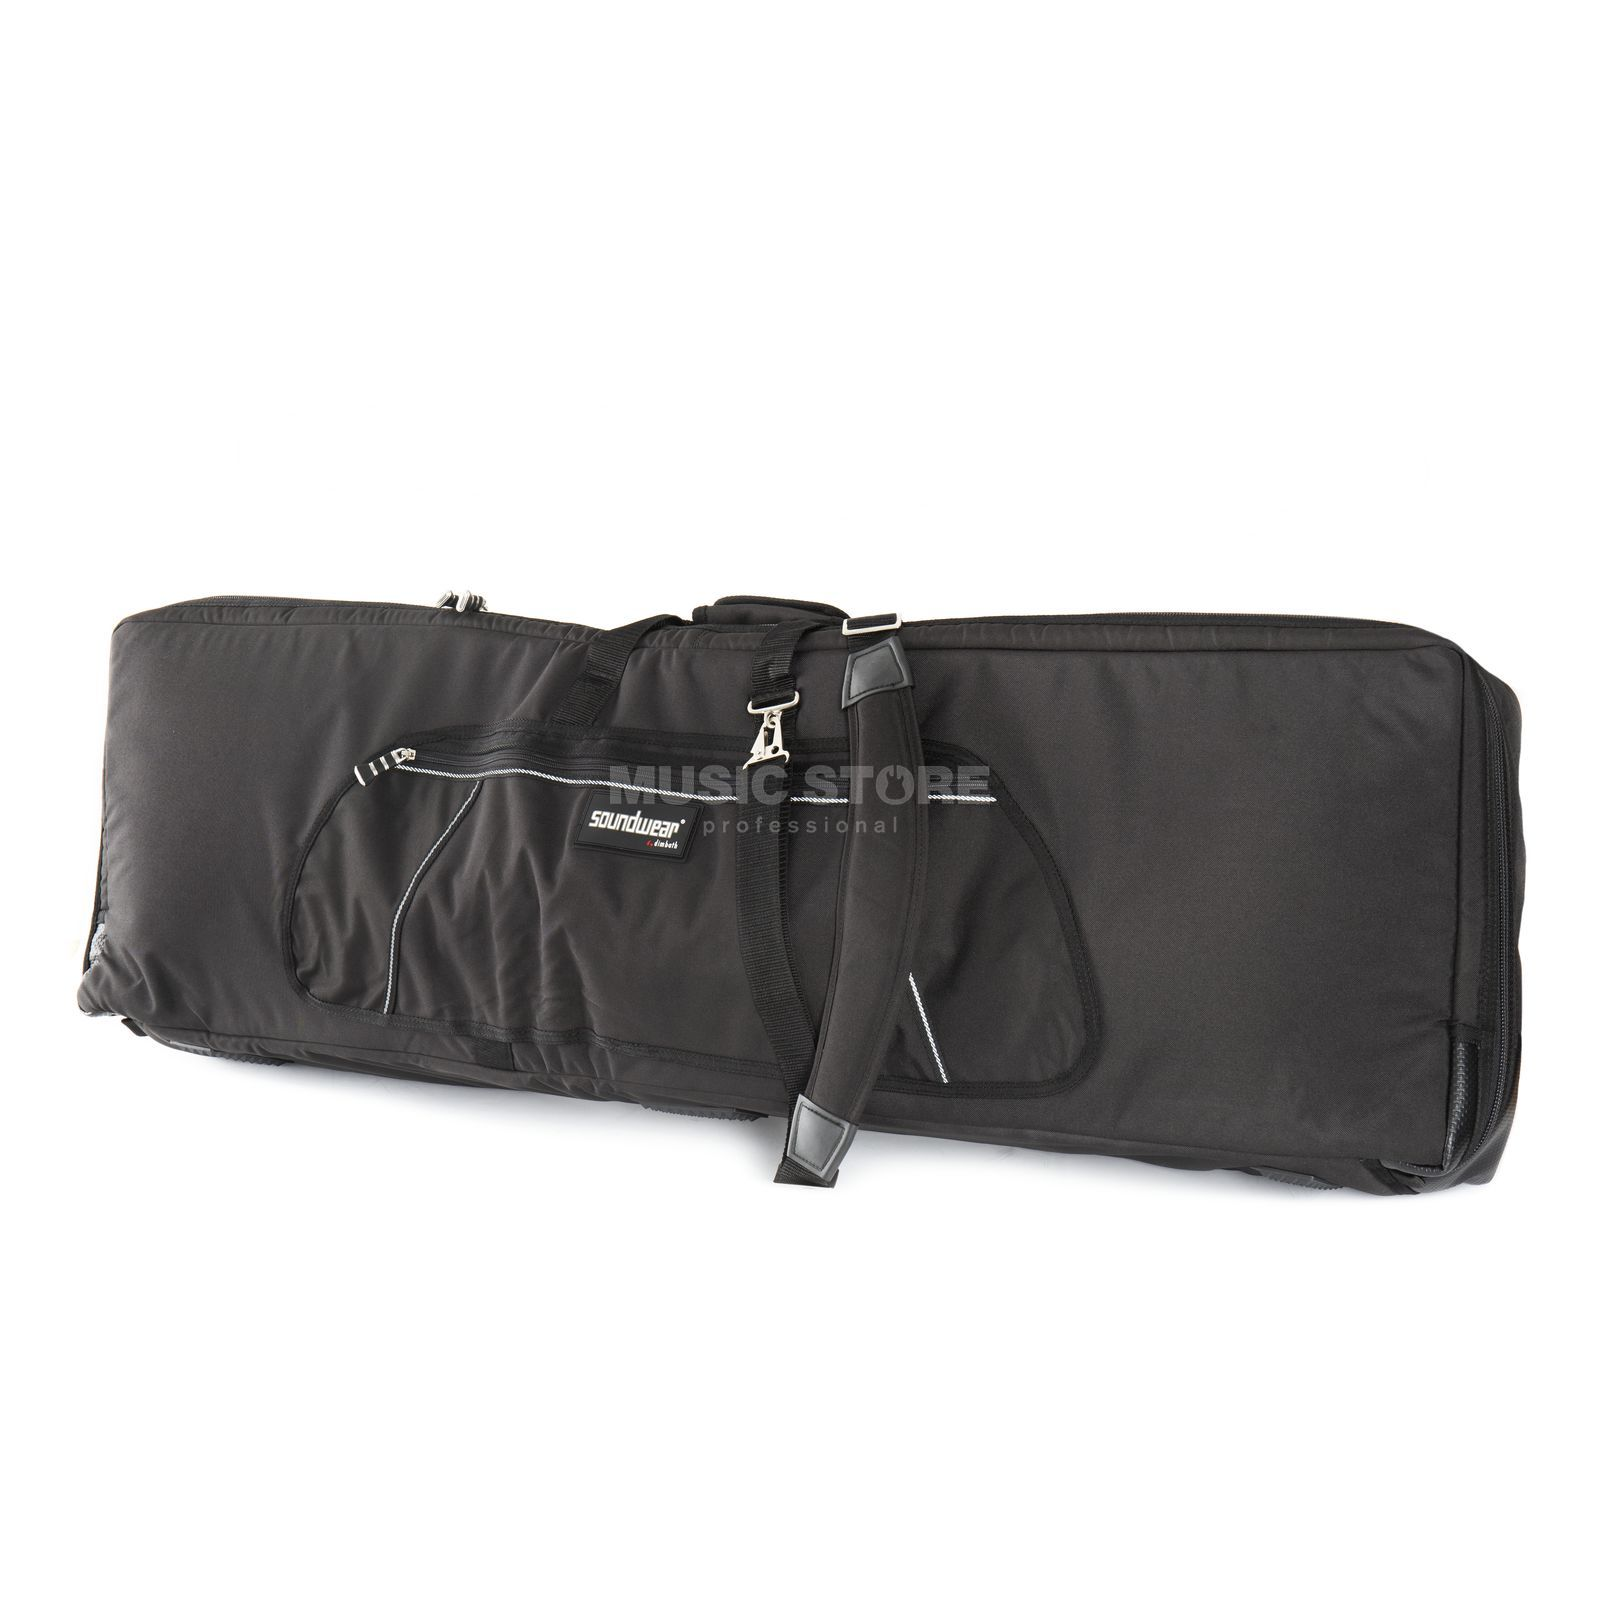 Soundwear Bag 127x32x12 cm for e.g. Yamaha NP 30, NPV60,NPV80 Product Image